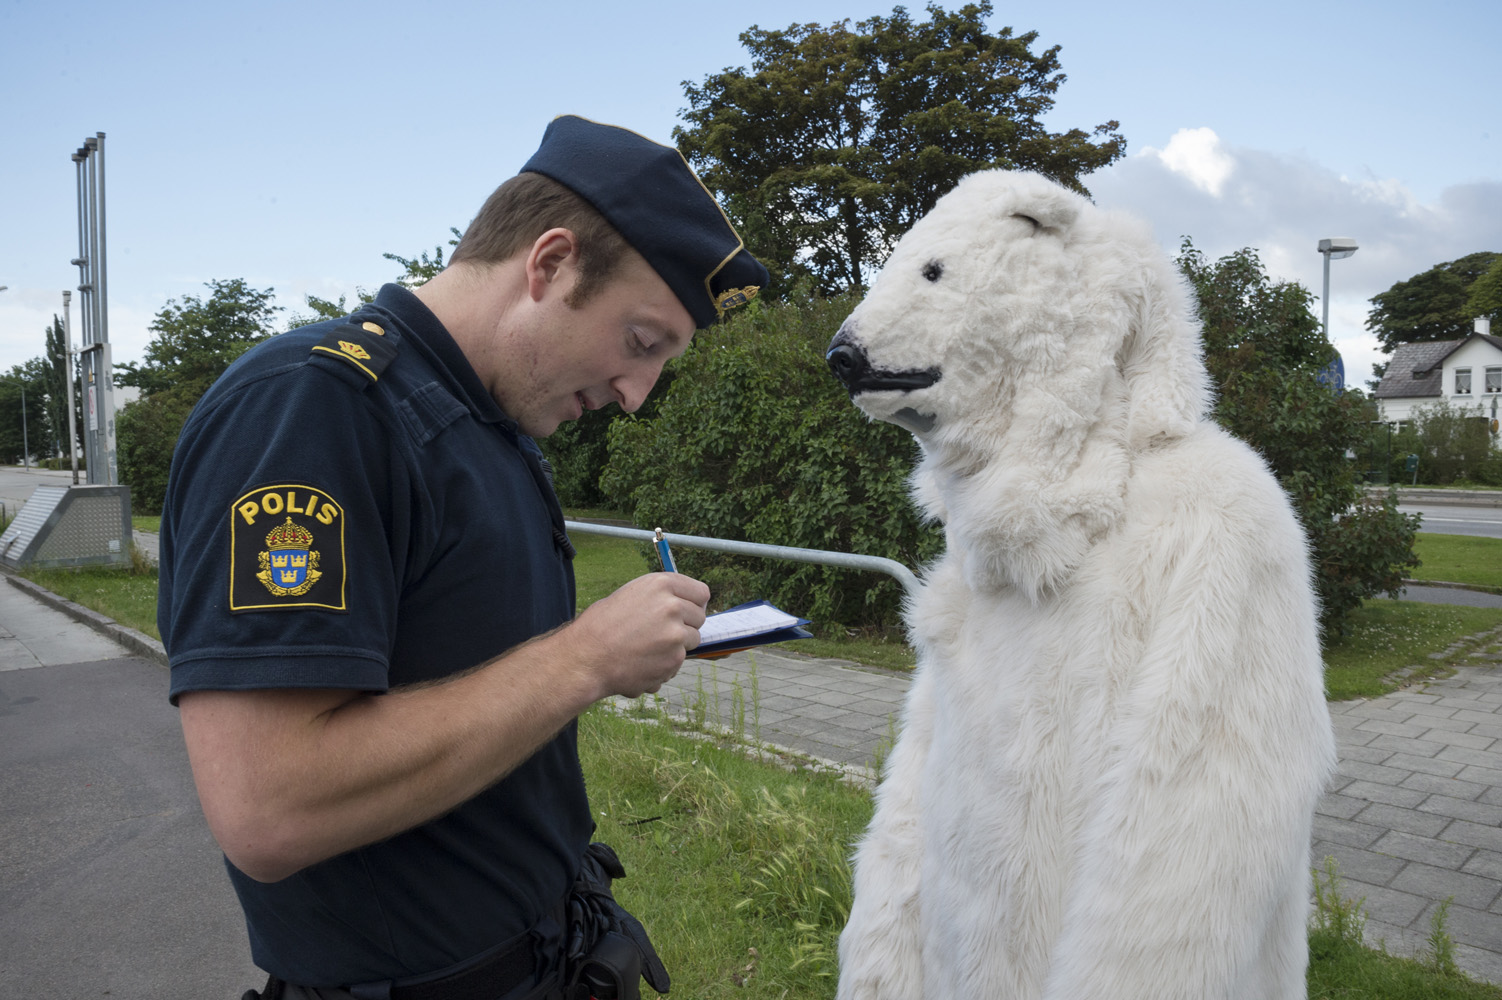 A Greenpeace activist in Polar bear suit being interrogated by the police during a protest at a Shell gas station in Malmoe Sweden. The activist are demonstrating against Shell's plan to drill for oil in the Arctic seas off the coast of Alaska this summer.